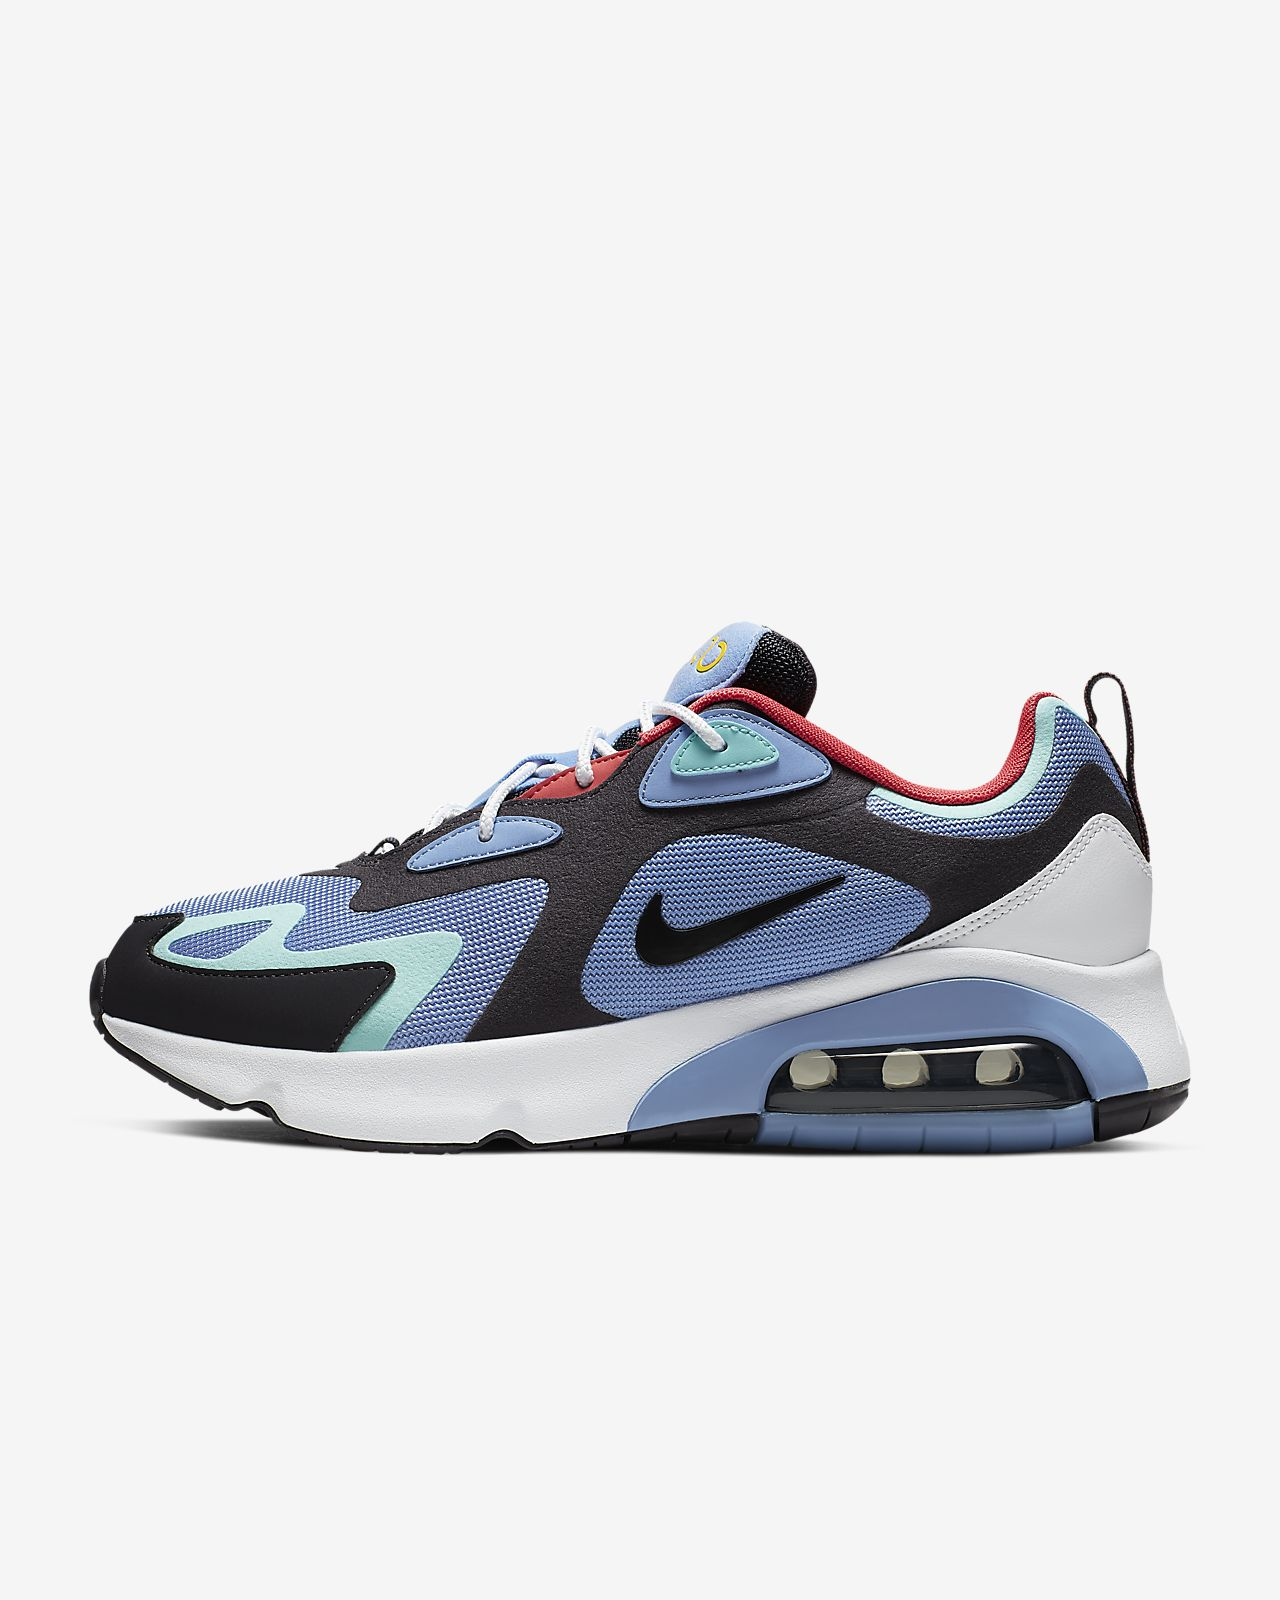 Chaussure Nike Air Max 200 (1992 World Stage) pour Homme